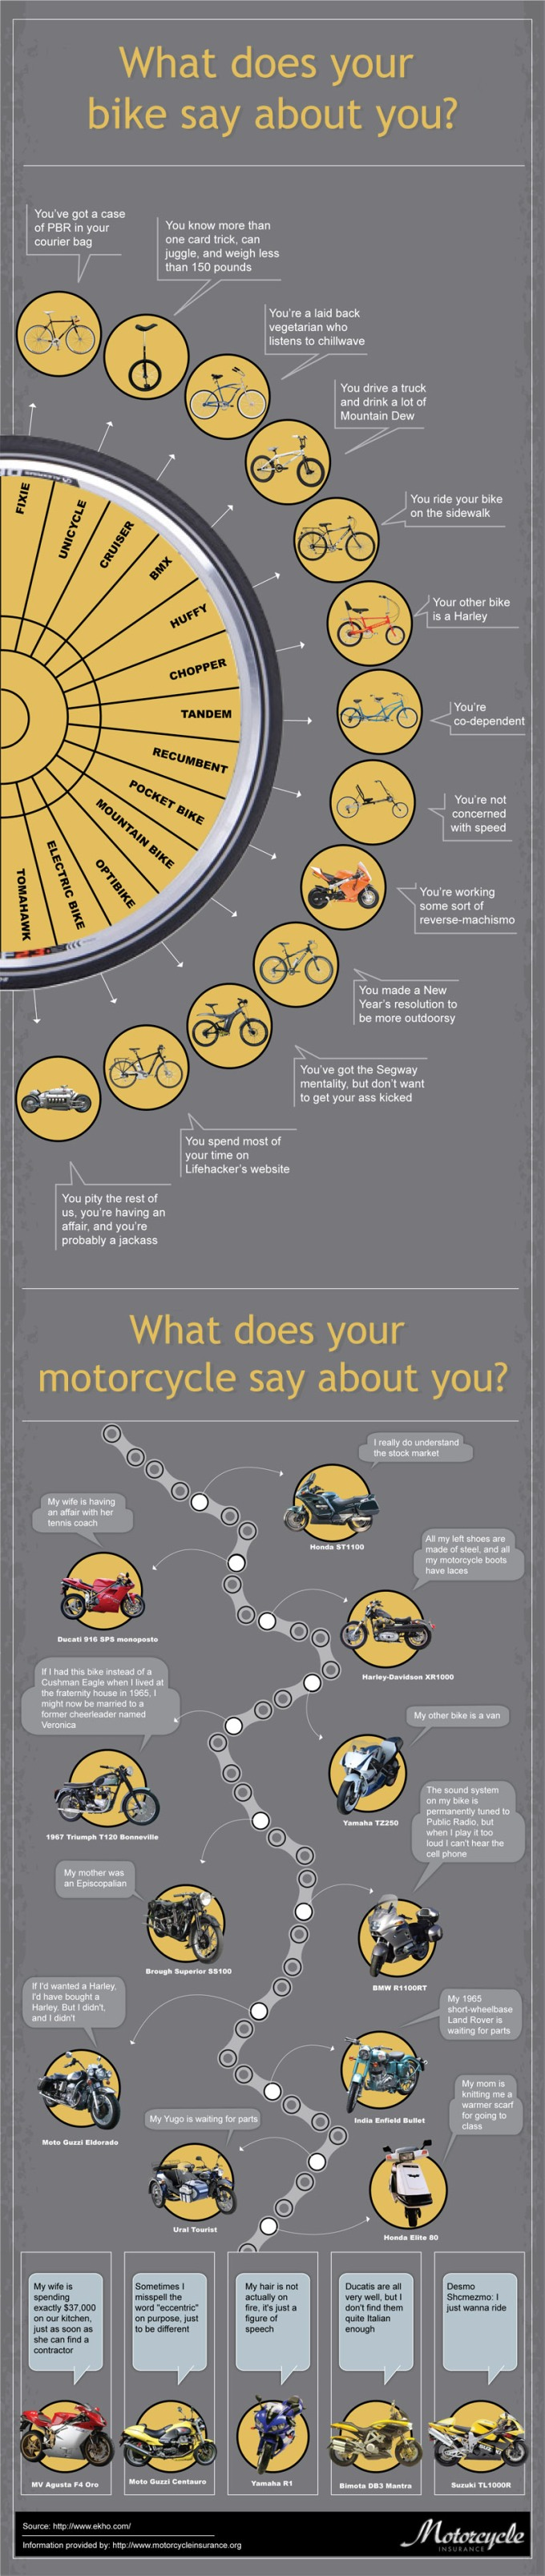 What-Does-Your-Bike-Say-About-You-Infographic-1